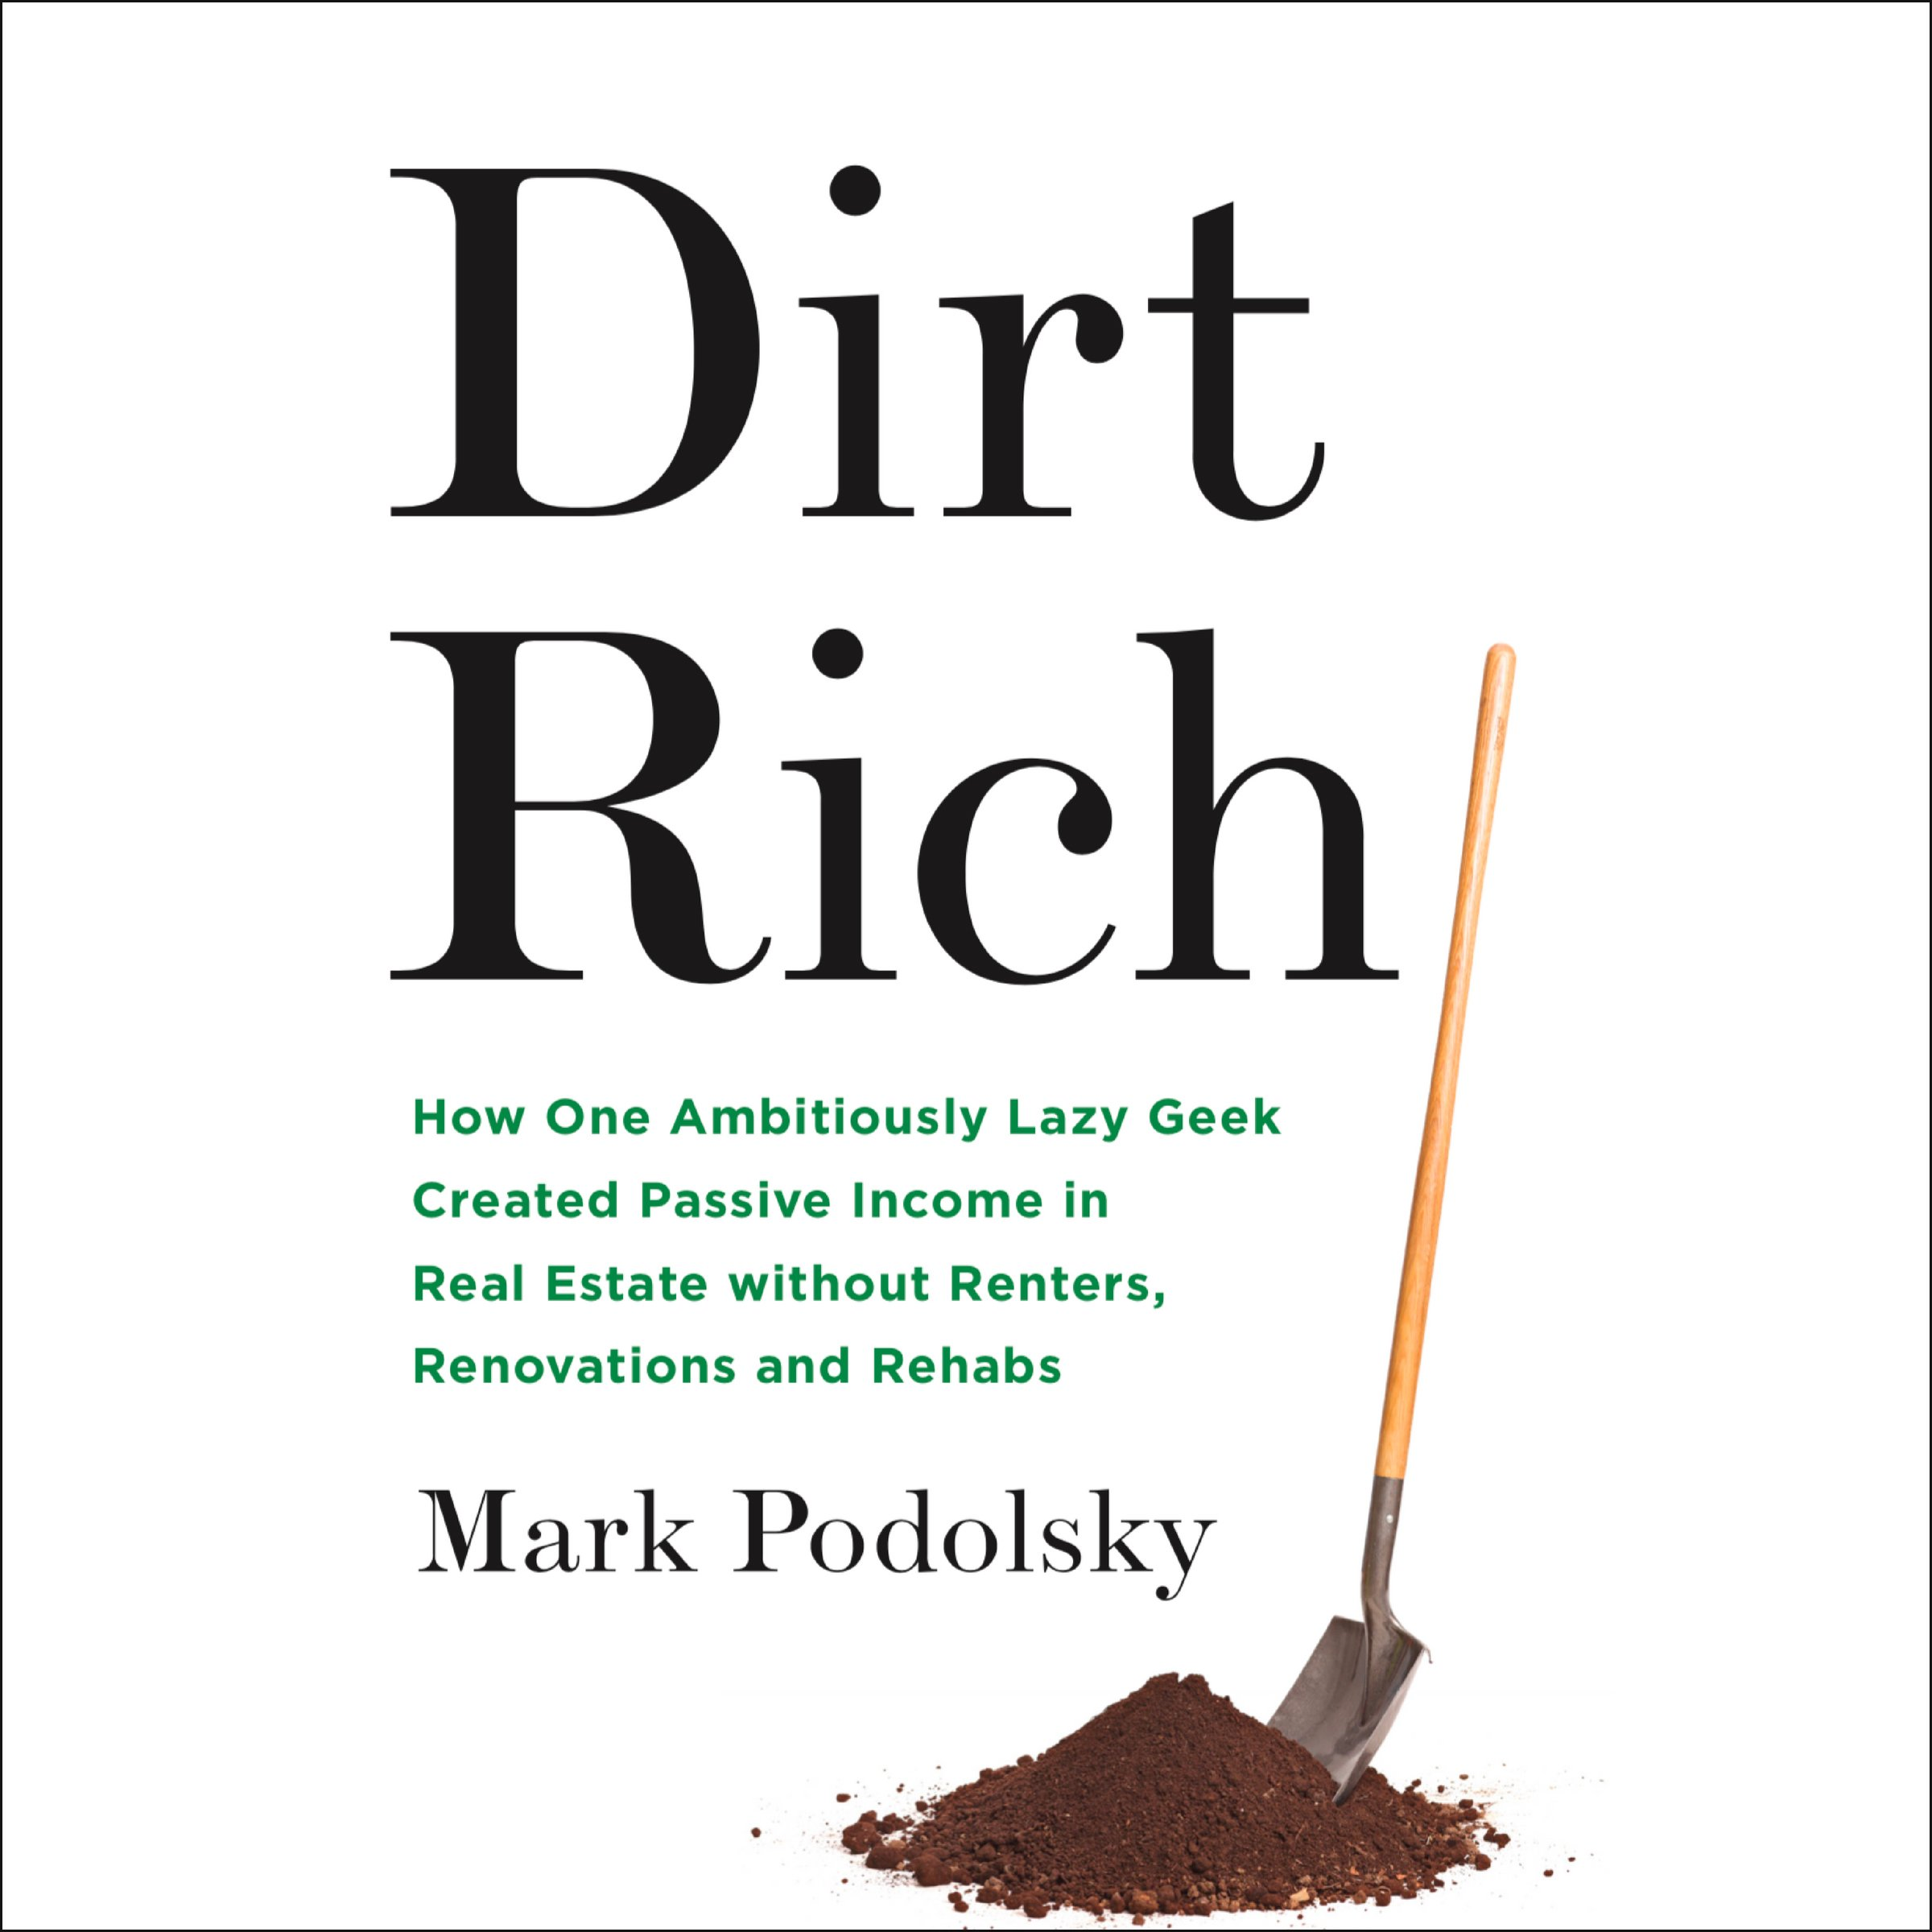 Dirt Rich: How One Ambitiously Lazy Geek Created Passive Income in Real Estate Without Renters, Renovations, and Rehabs